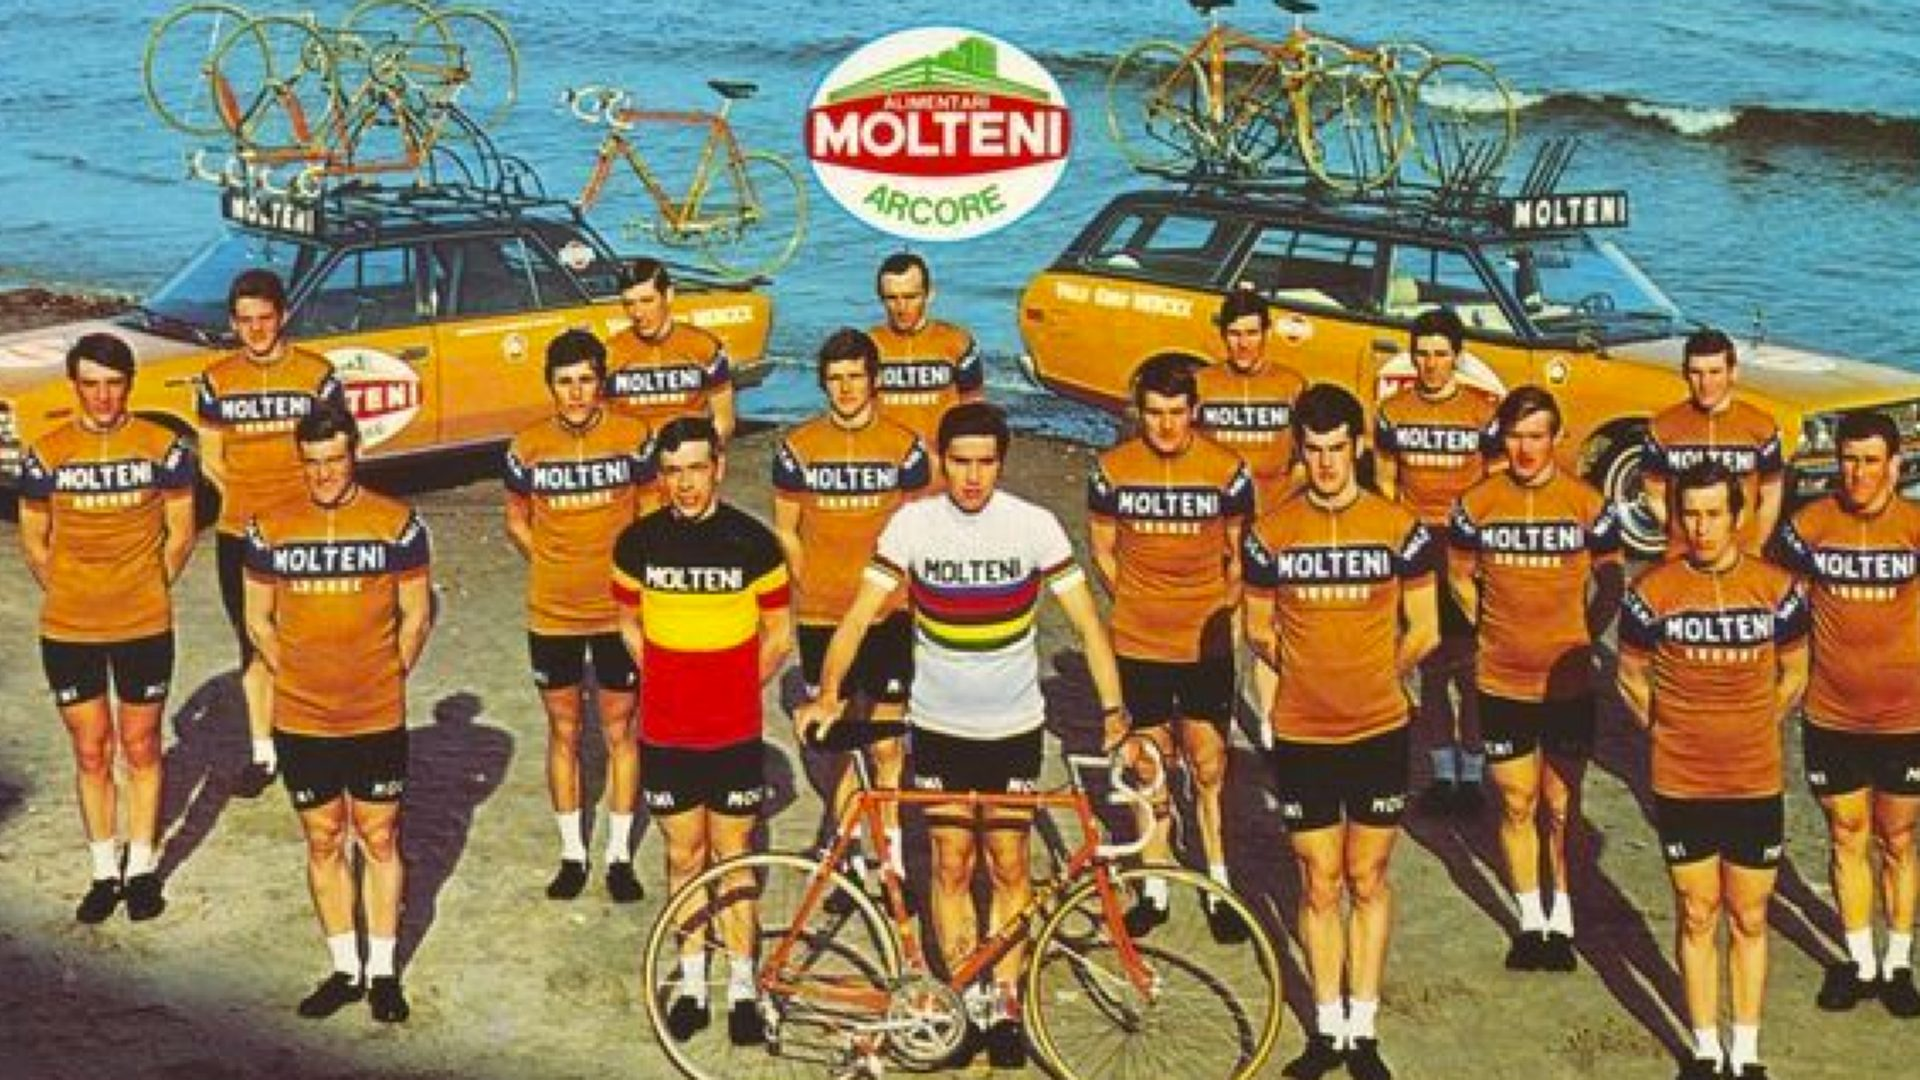 Group of cyclists wearing vintage Molteni shirts